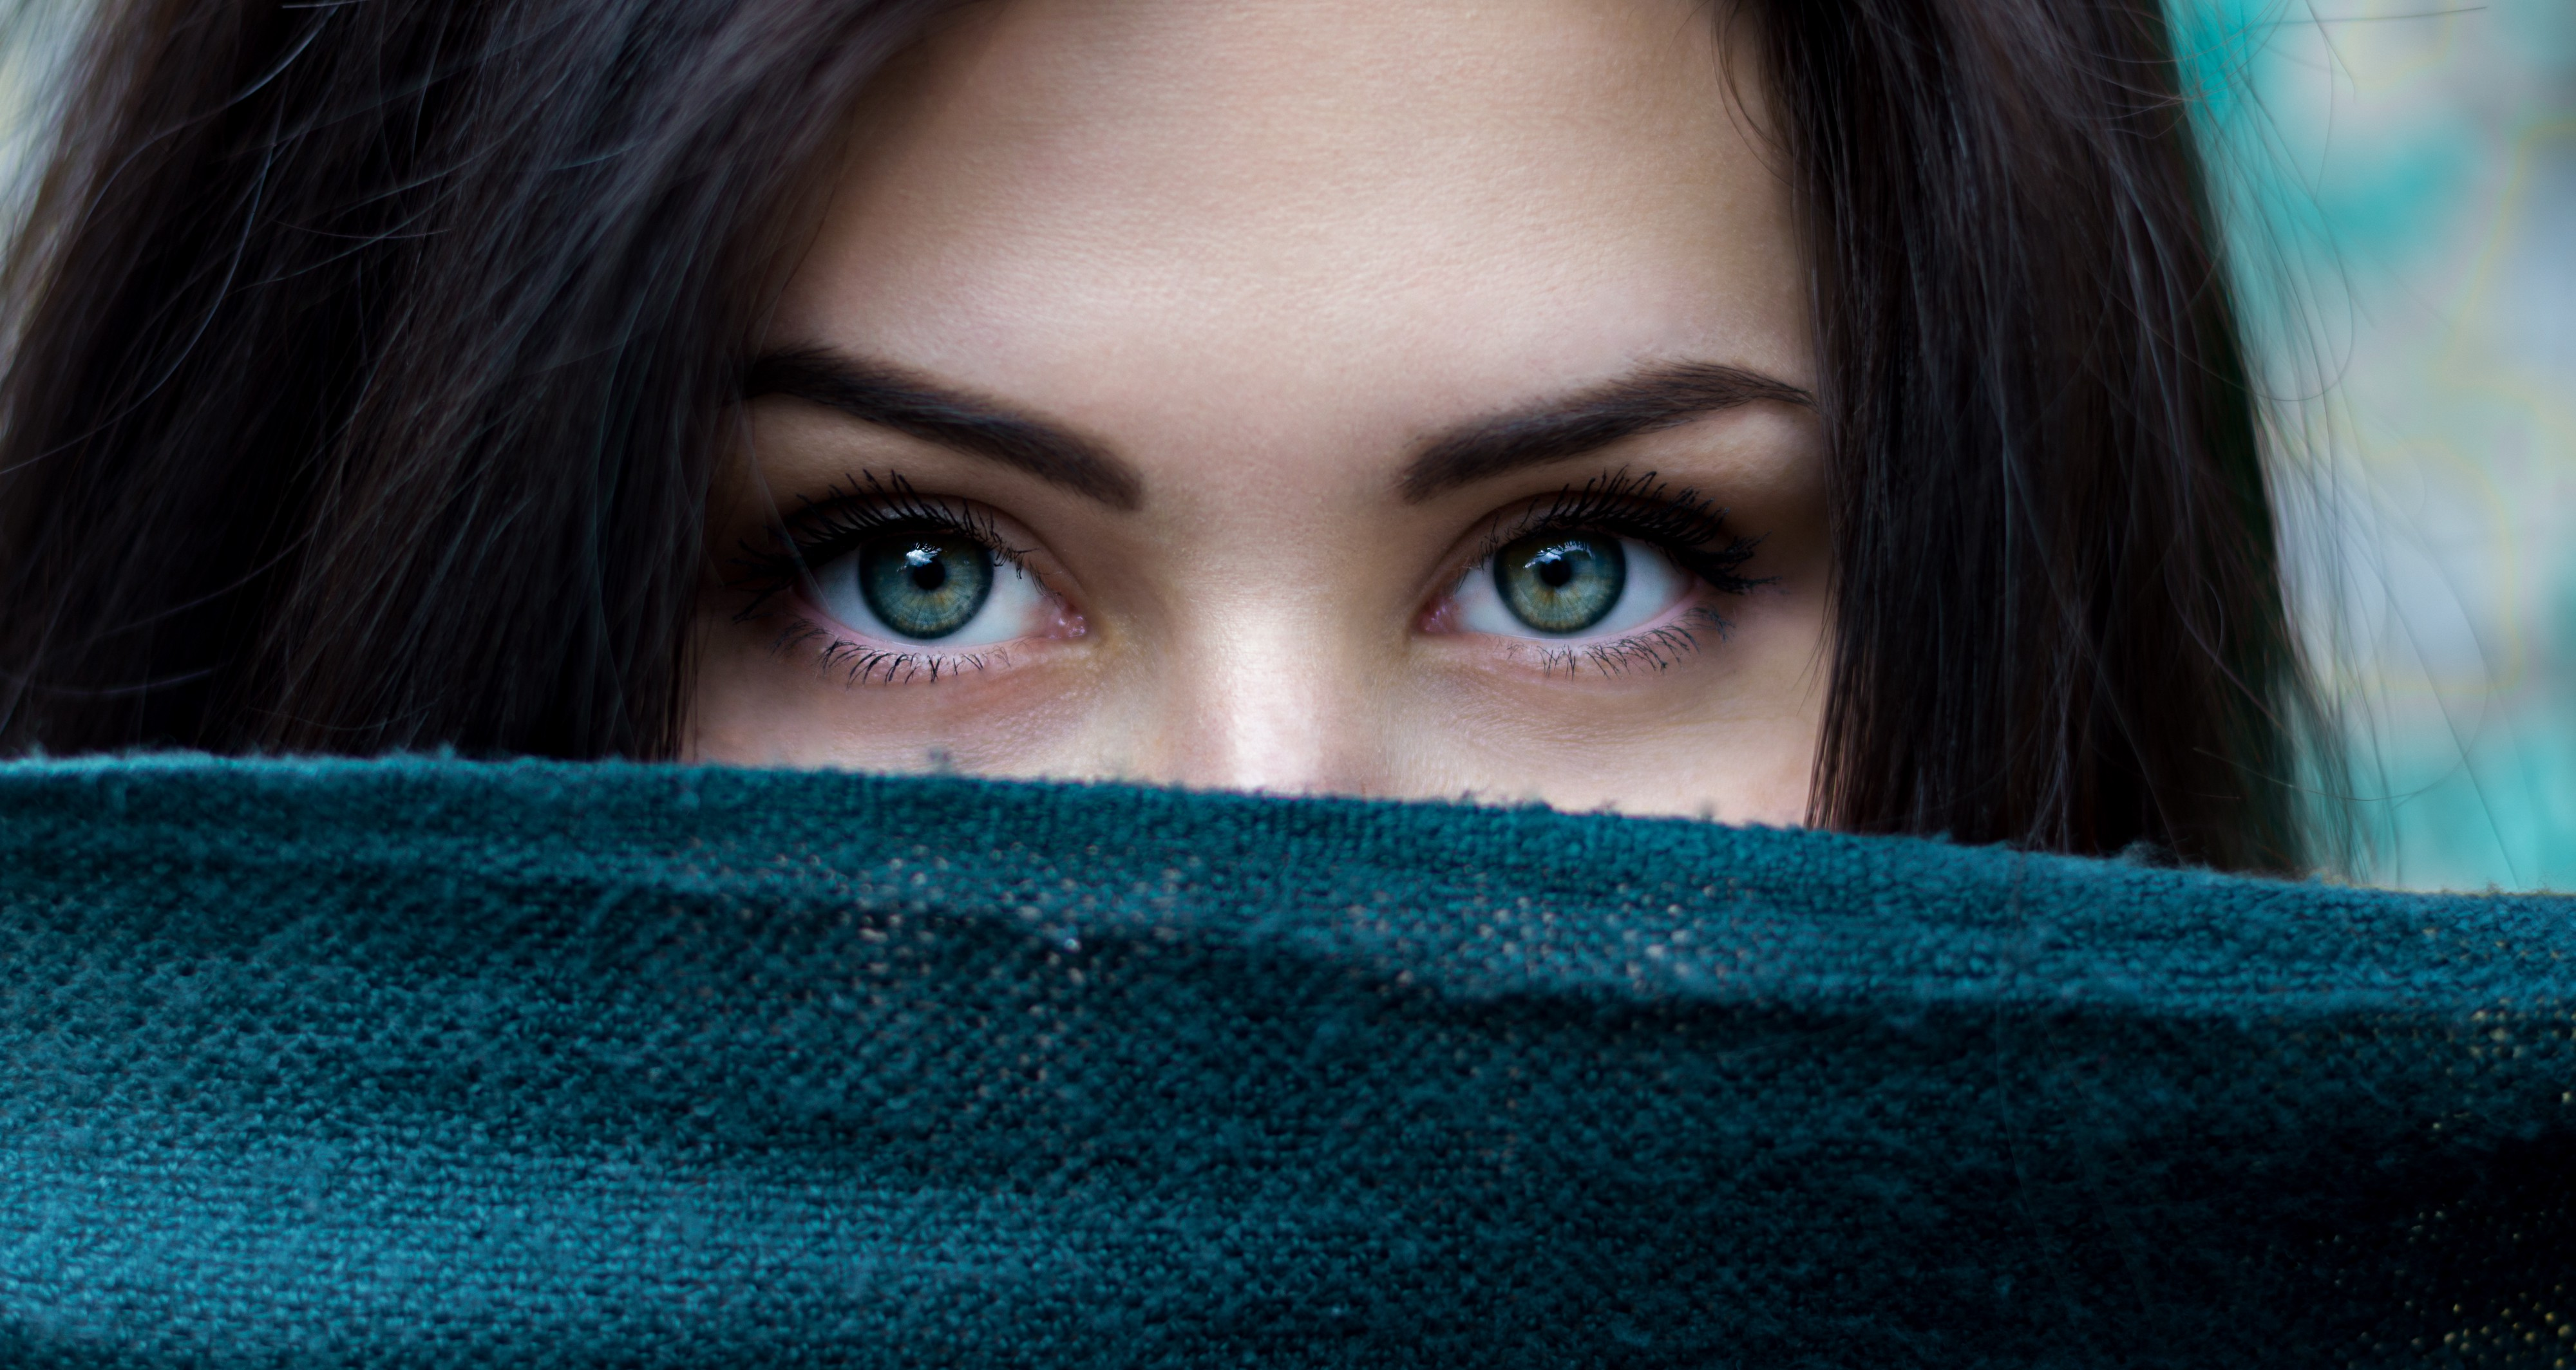 Photo of a woman's eyes peeking from behind material.